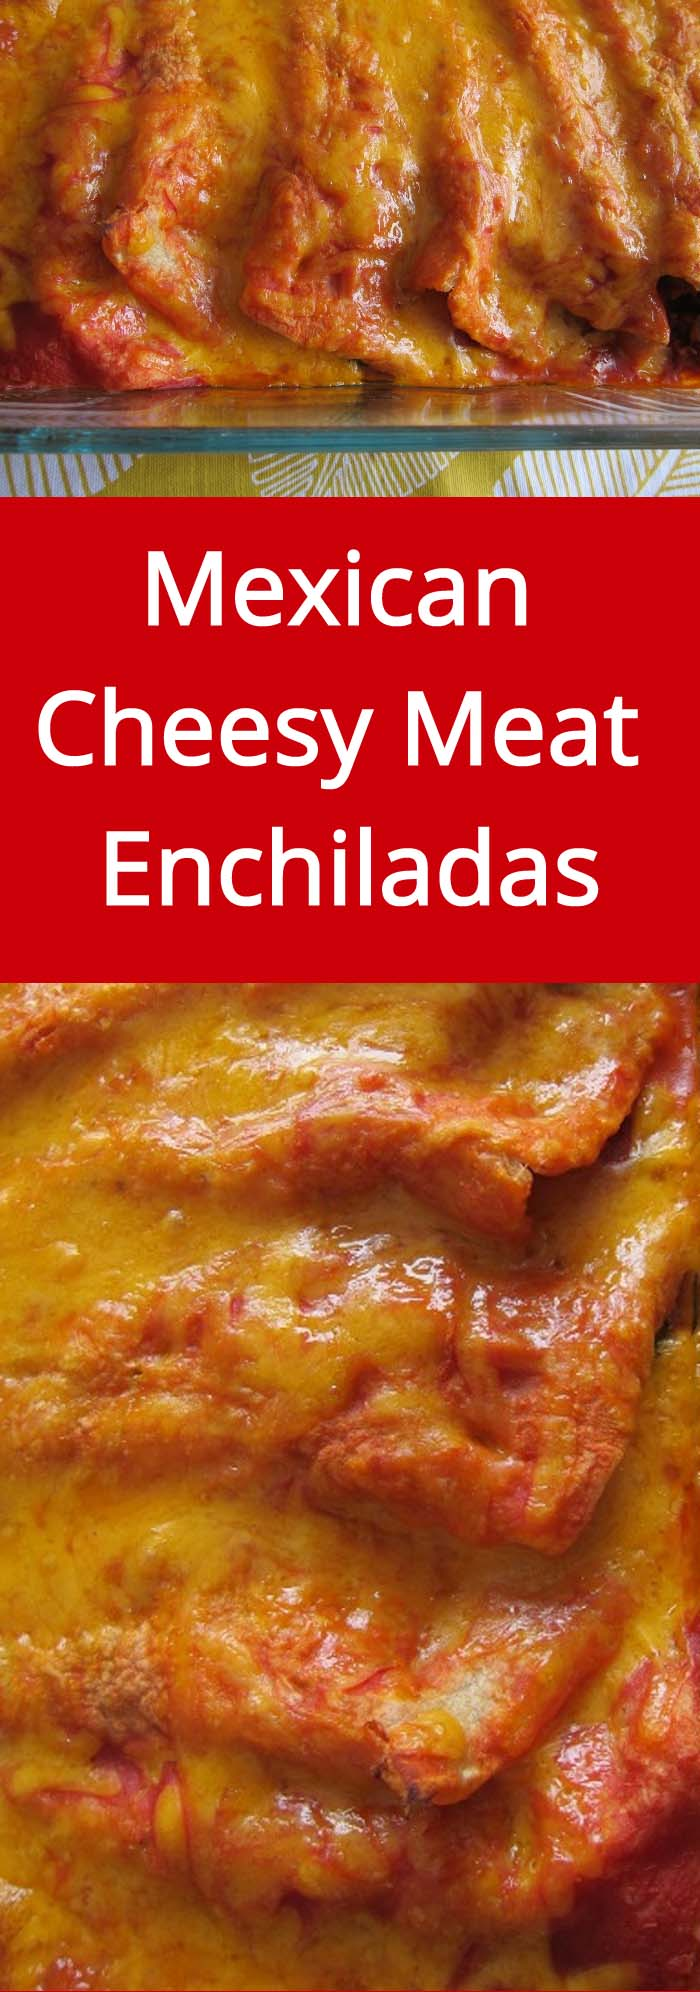 Mexican Cheesy Meat Enchiladas - hot, yummy, with melted cheese - love these!   MelanieCooks.com